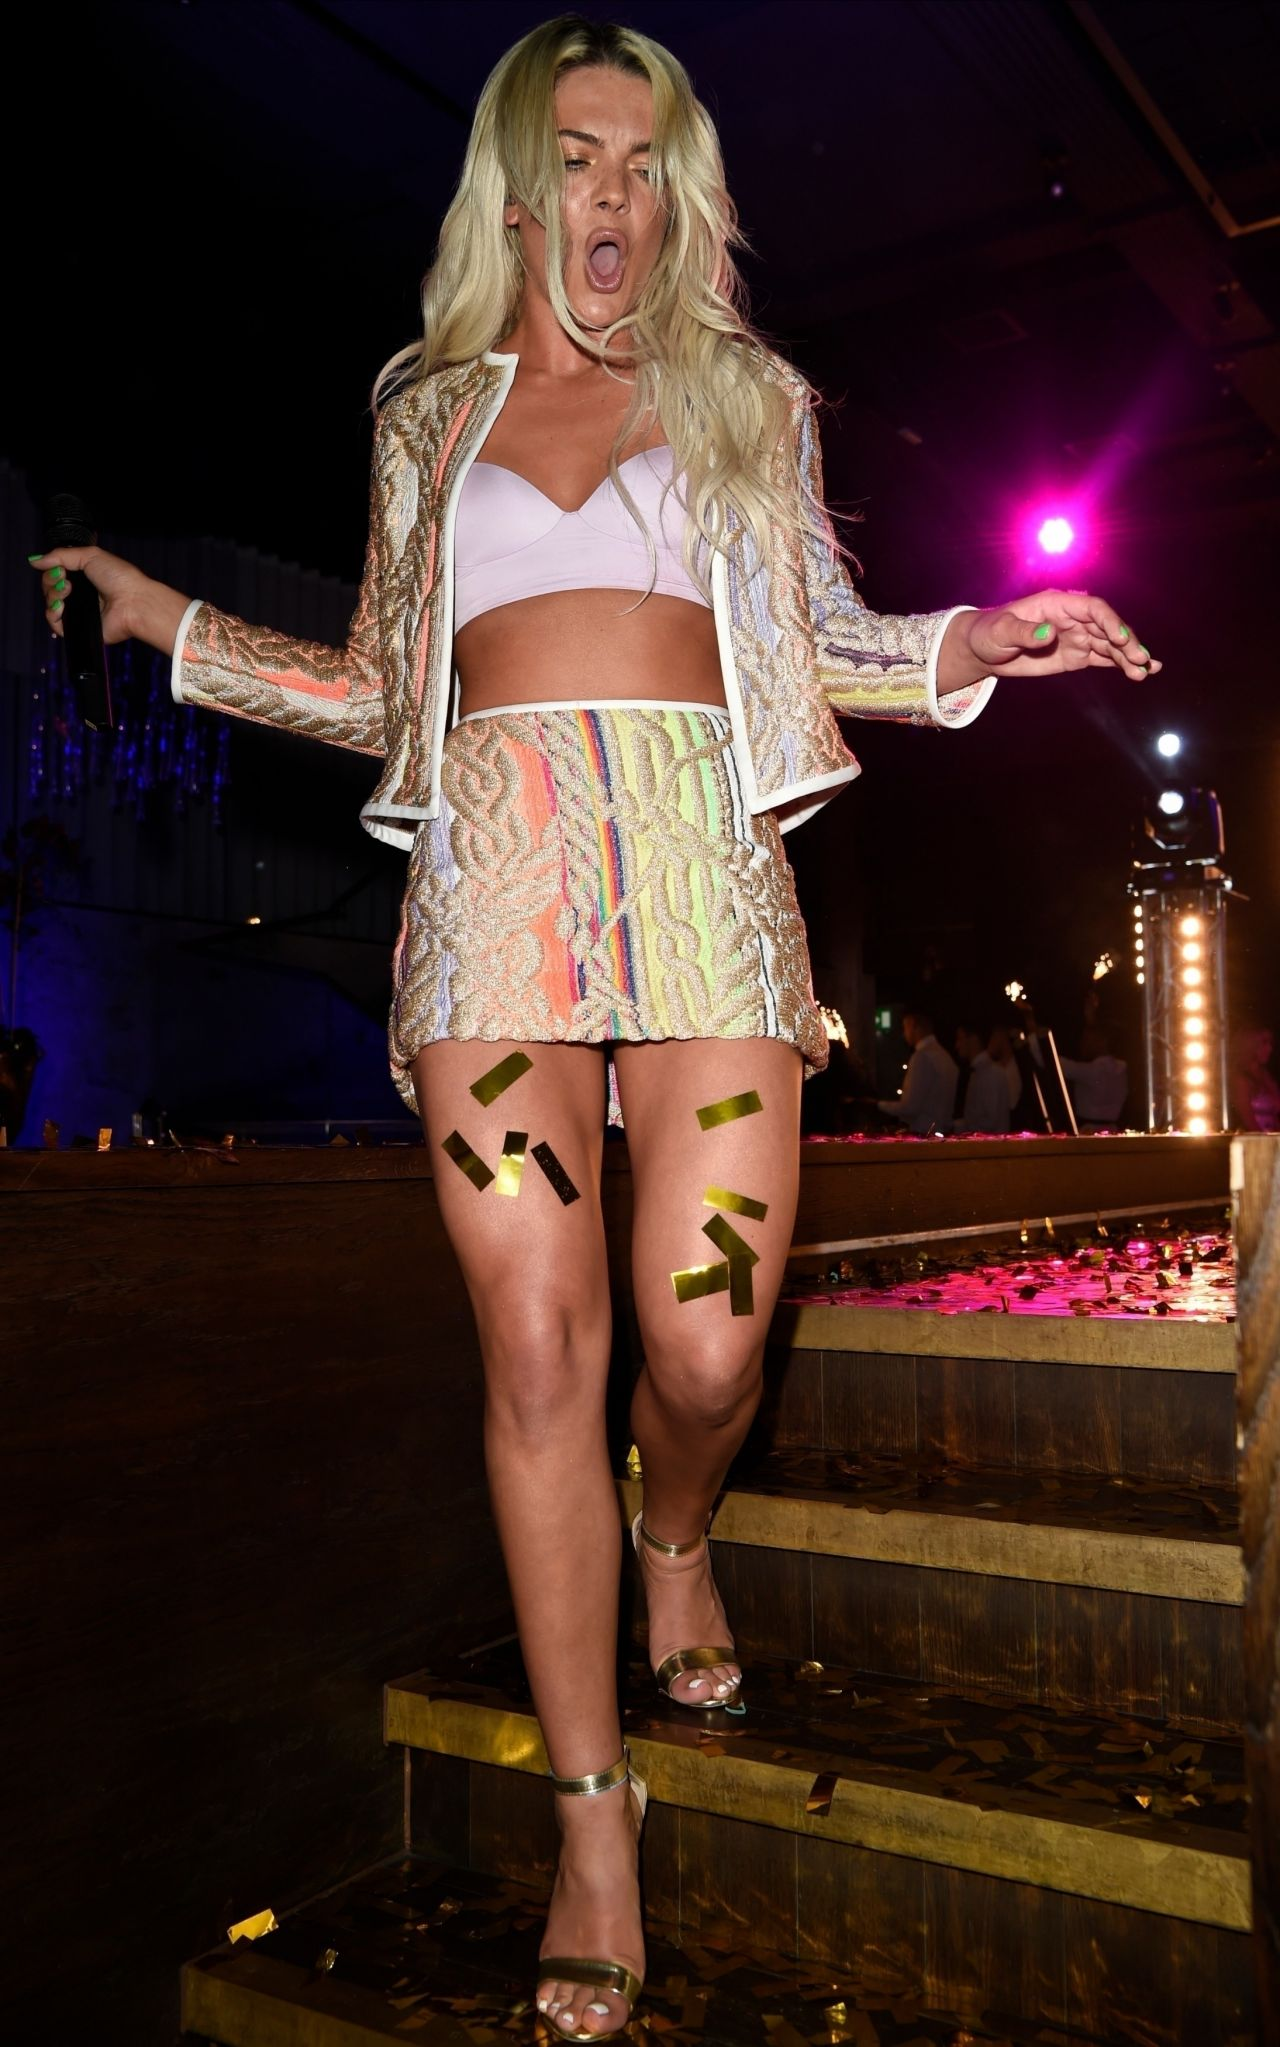 louisa-johnson-private-performance-in-manchester-05-16-2018-0.jpg